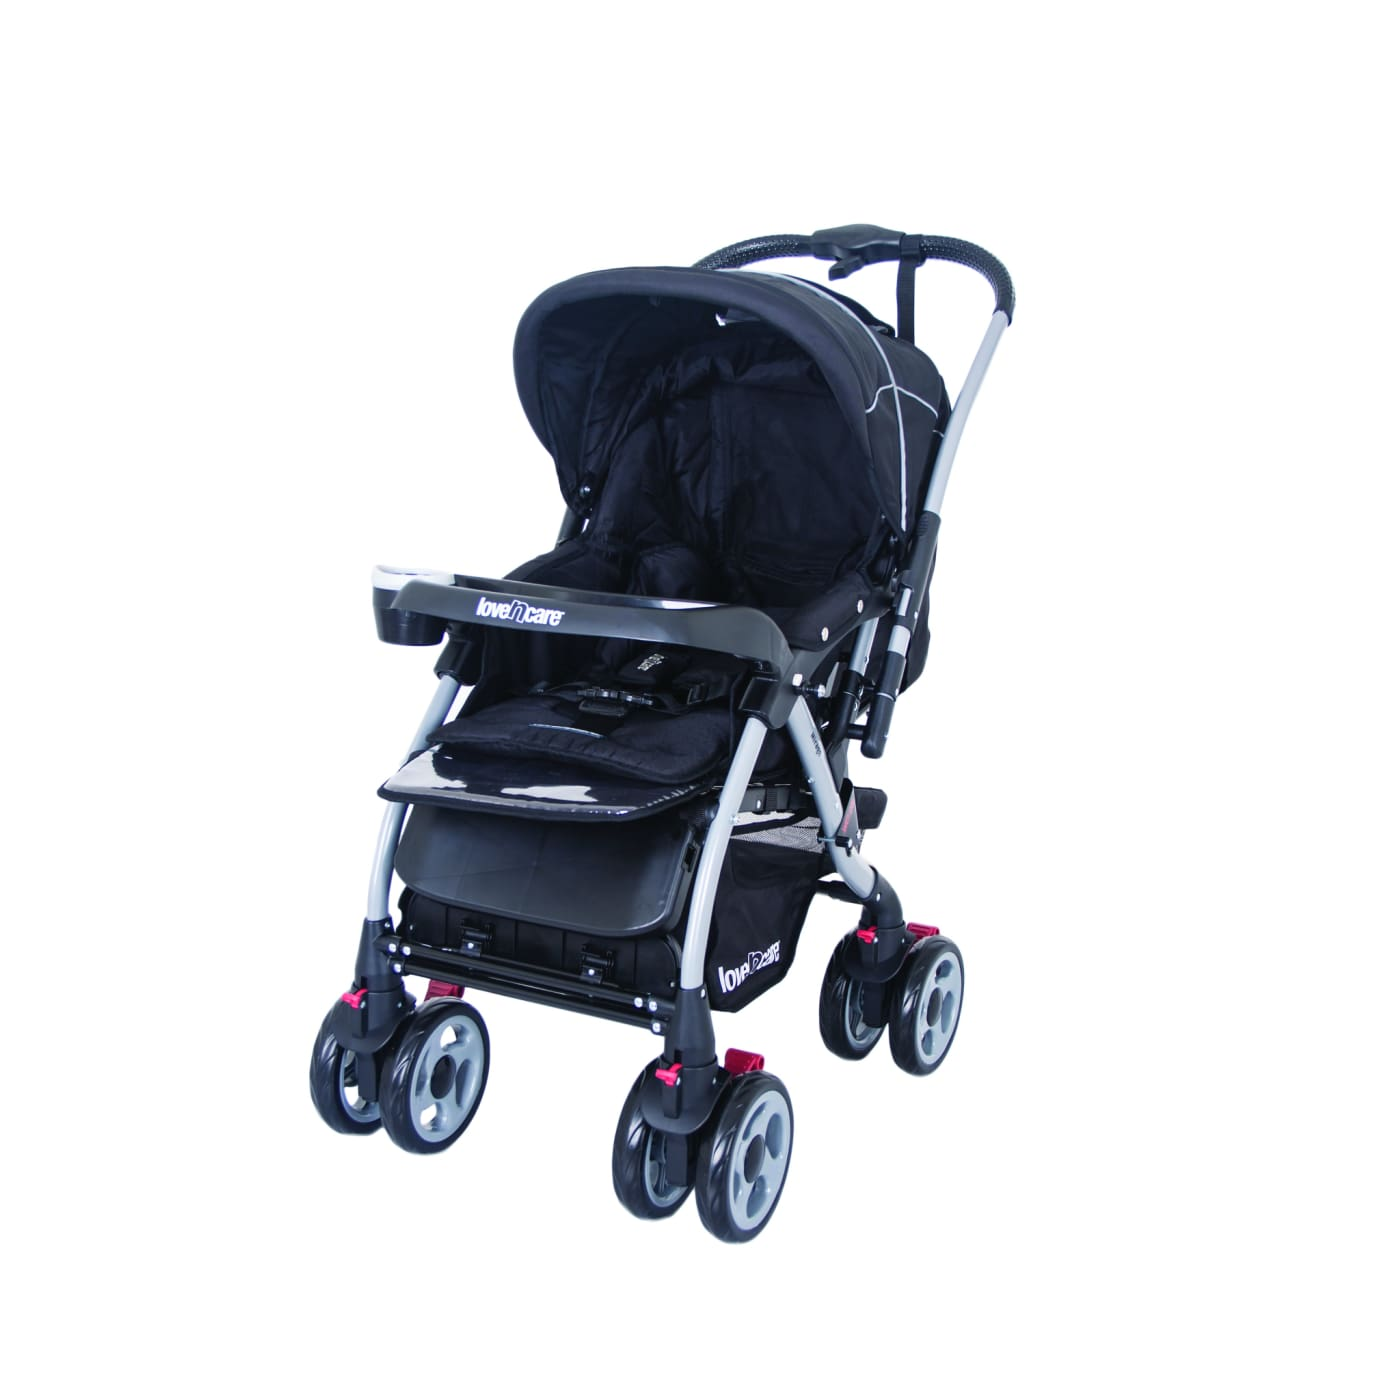 Love N Care Mirage Stroller - Nero - PRAMS & STROLLERS - 4 WHEEL